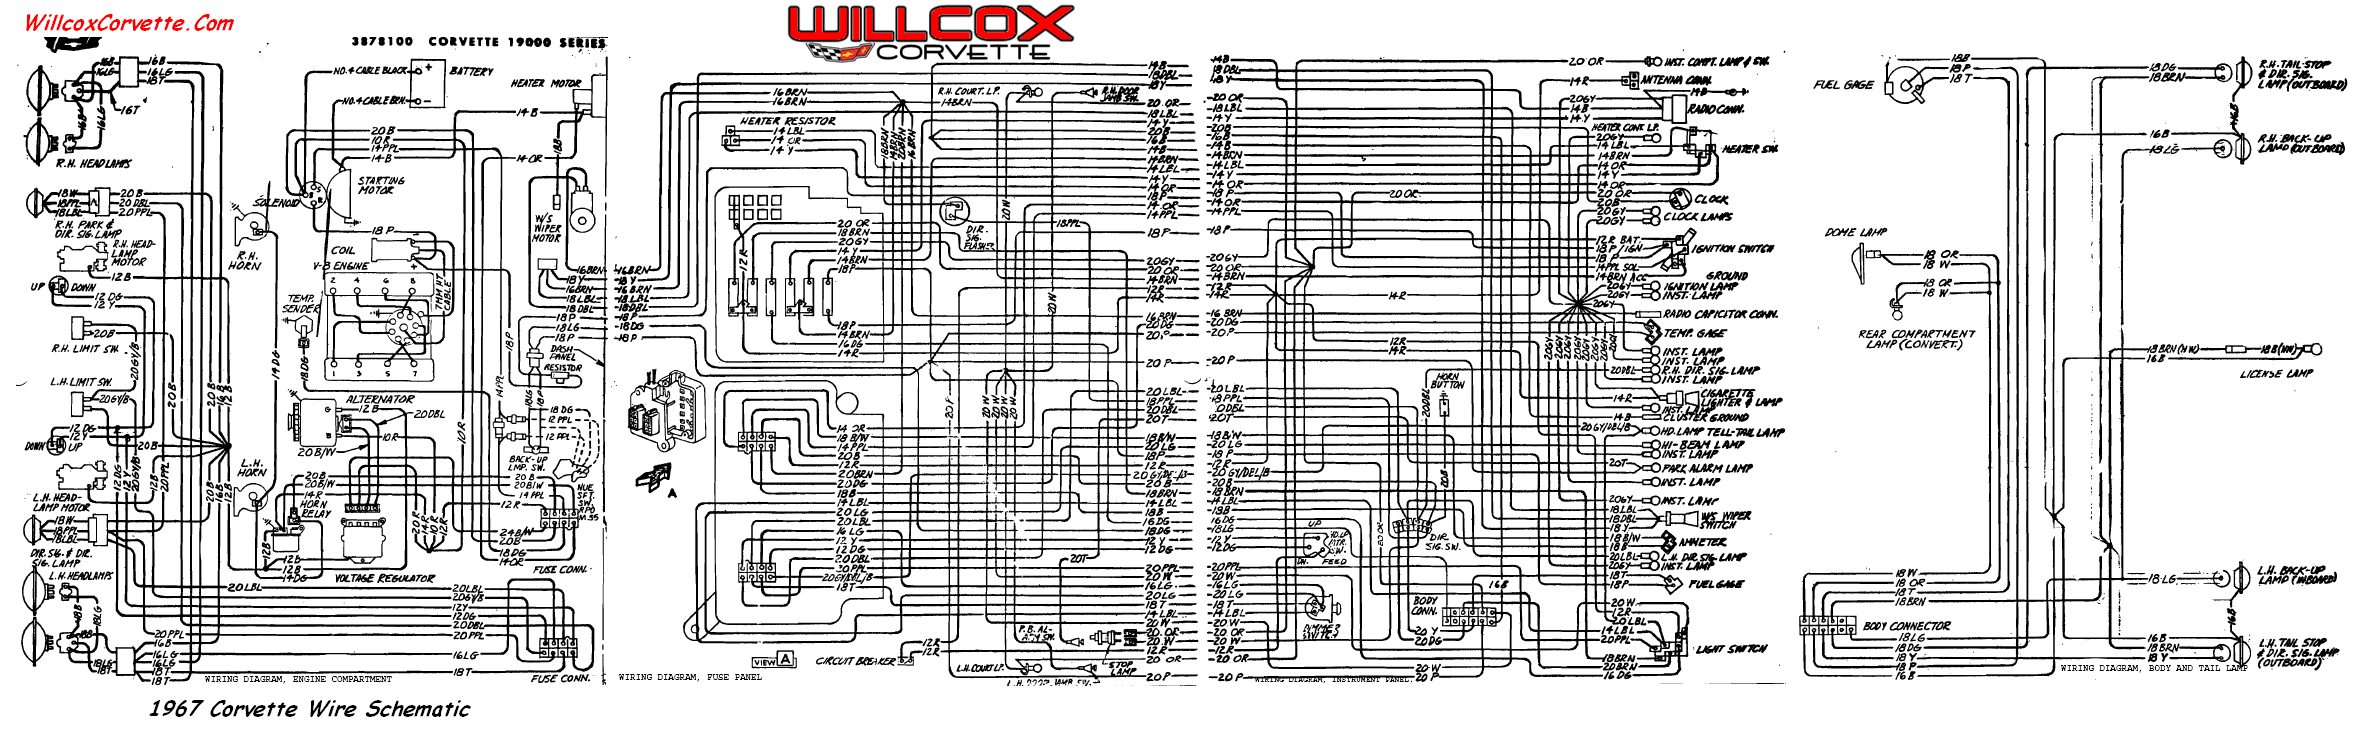 87 Corvette Chassis Wiring Diagram Great Installation Of Automotive Schematic Fan Motor 1984 Third Level Rh 4 21 Jacobwinterstein Com 1987 Engine